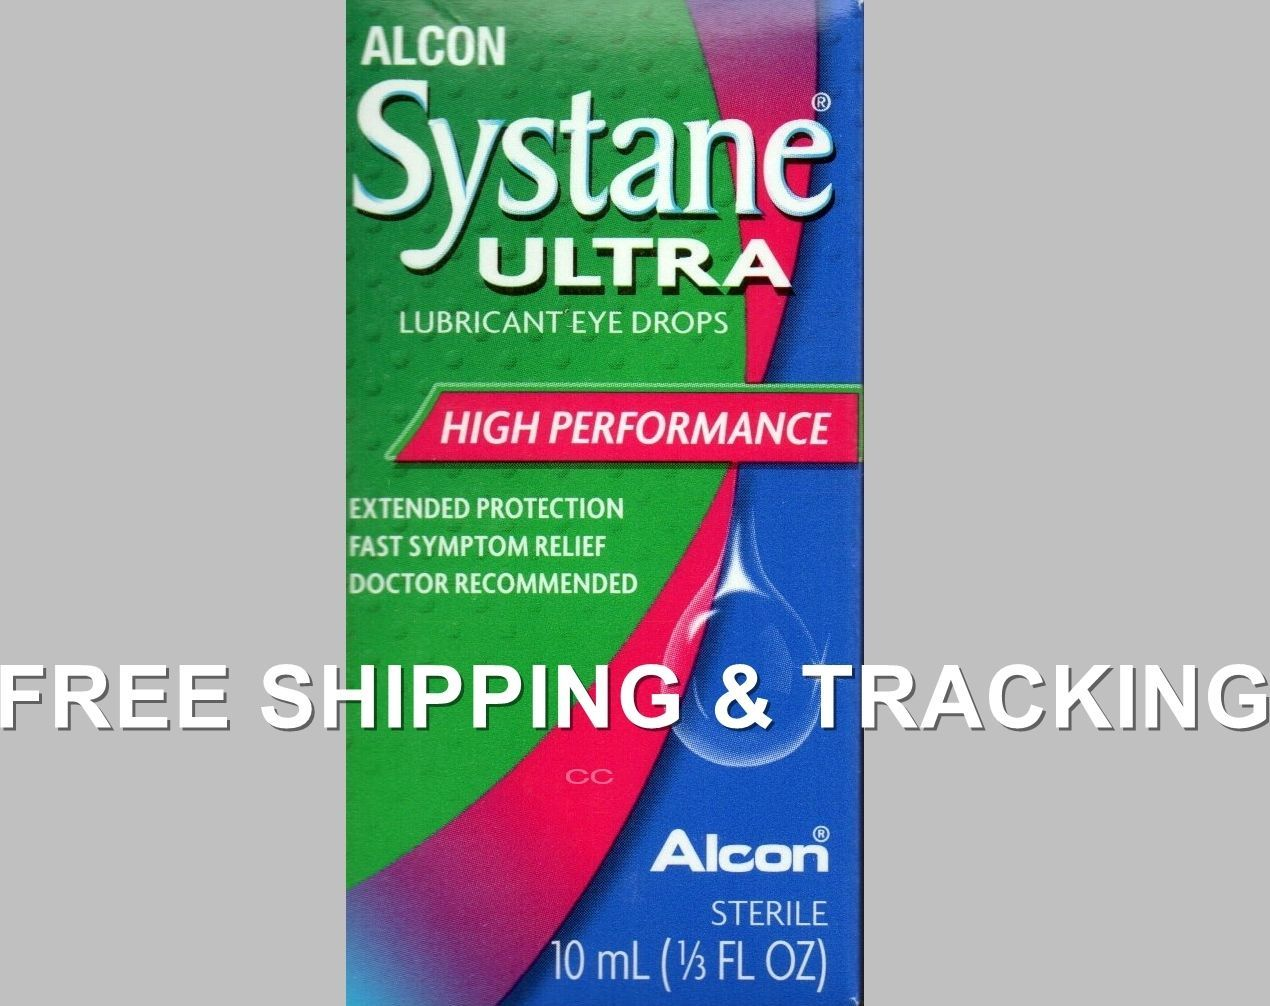 Alcon Systane Eye Drops Lubricant Ultra 10 ml Exp. 2019